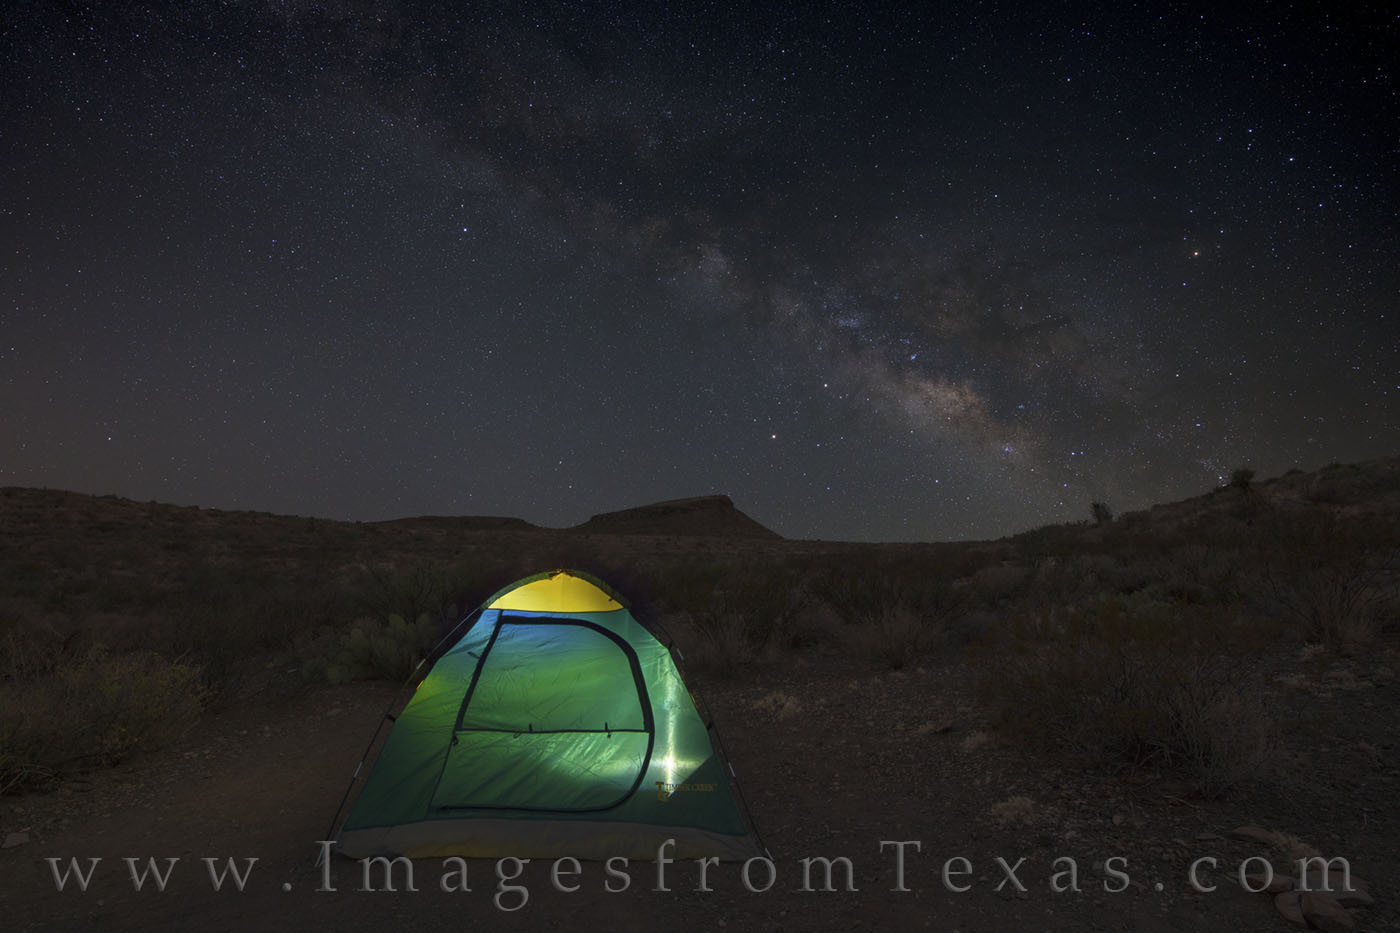 tent, camping, milky way, big bend, big bend ranch, chihuahuan desert, stars, landscape, solitude, alone, remote, photo